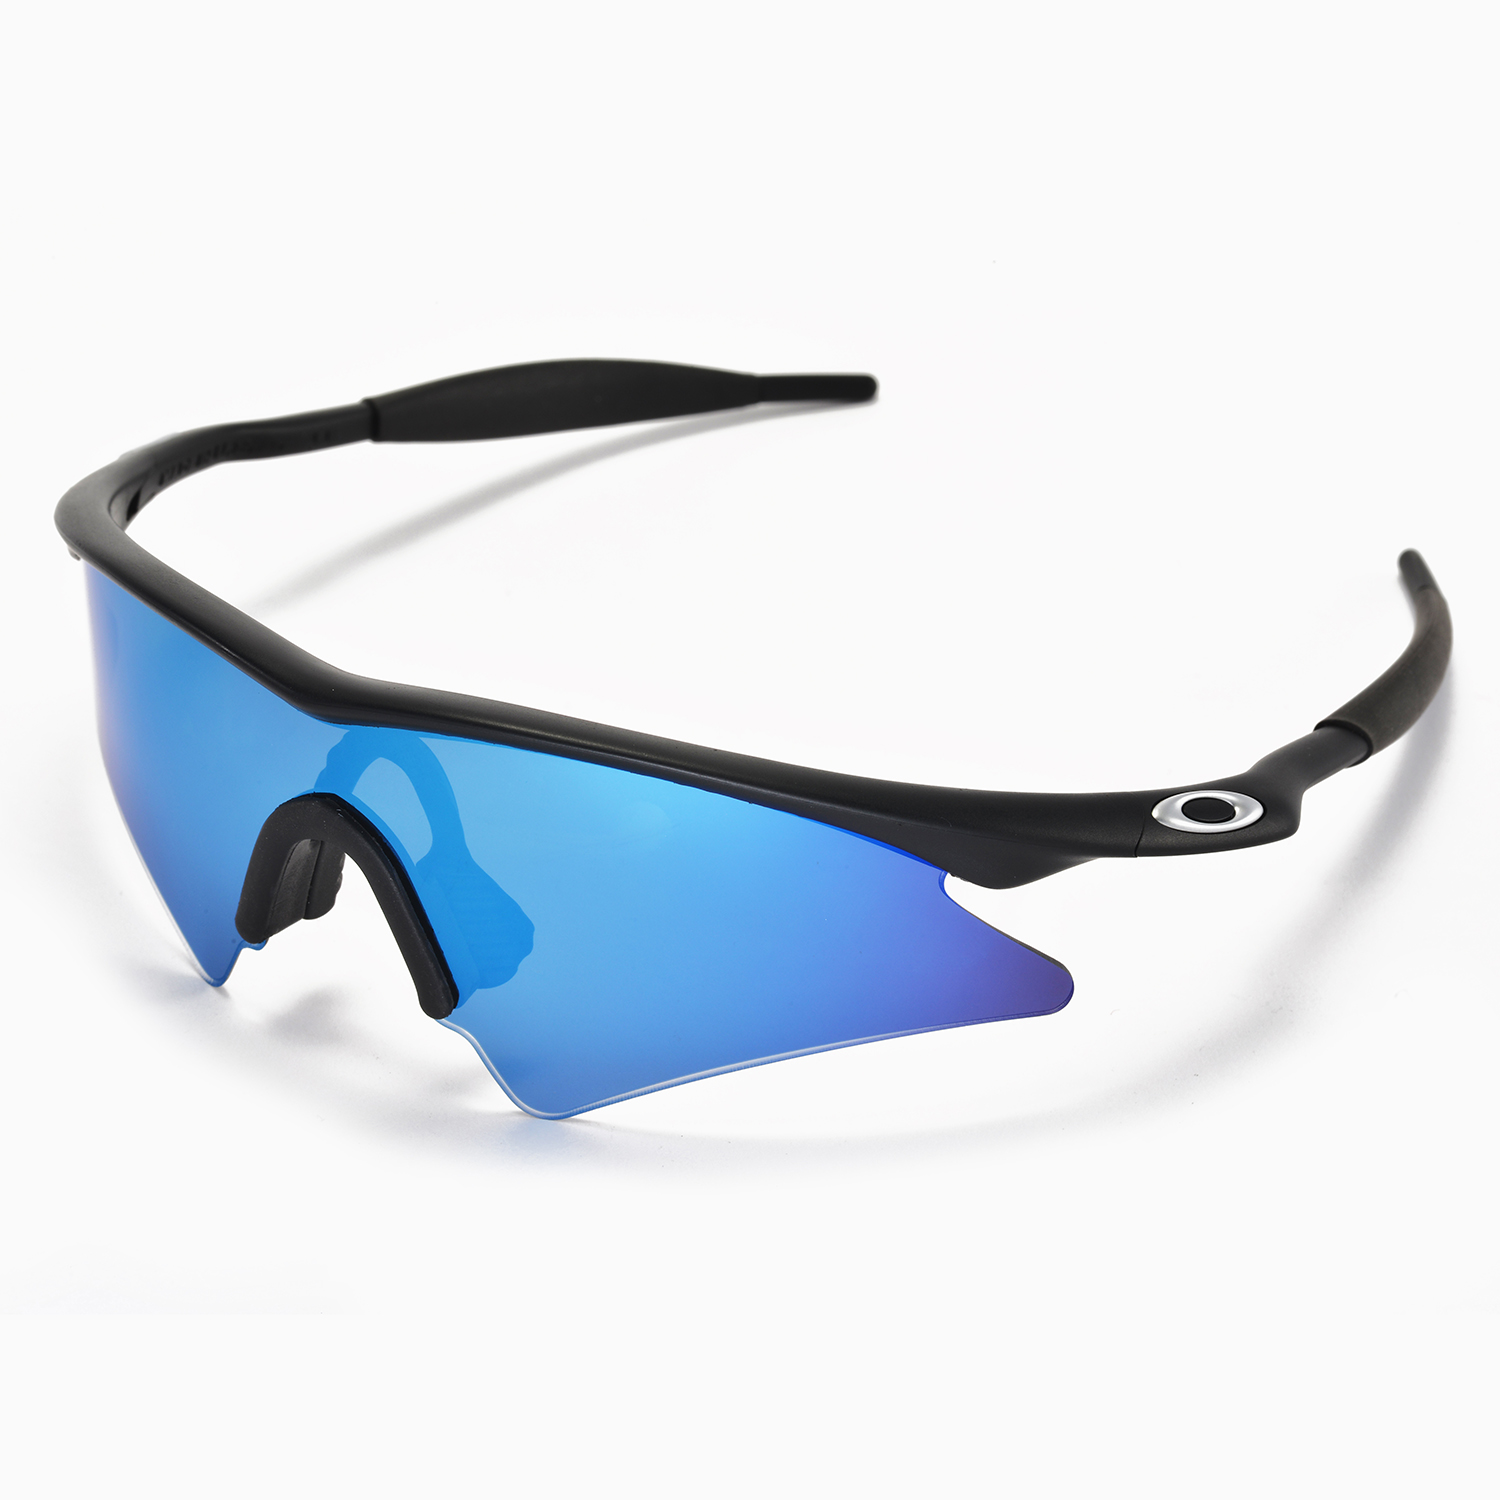 b1ded99bb7d Details about WL Polarized Ice Blue Replacement Lenses For Oakley New M  Frame Sweep Sunglasses